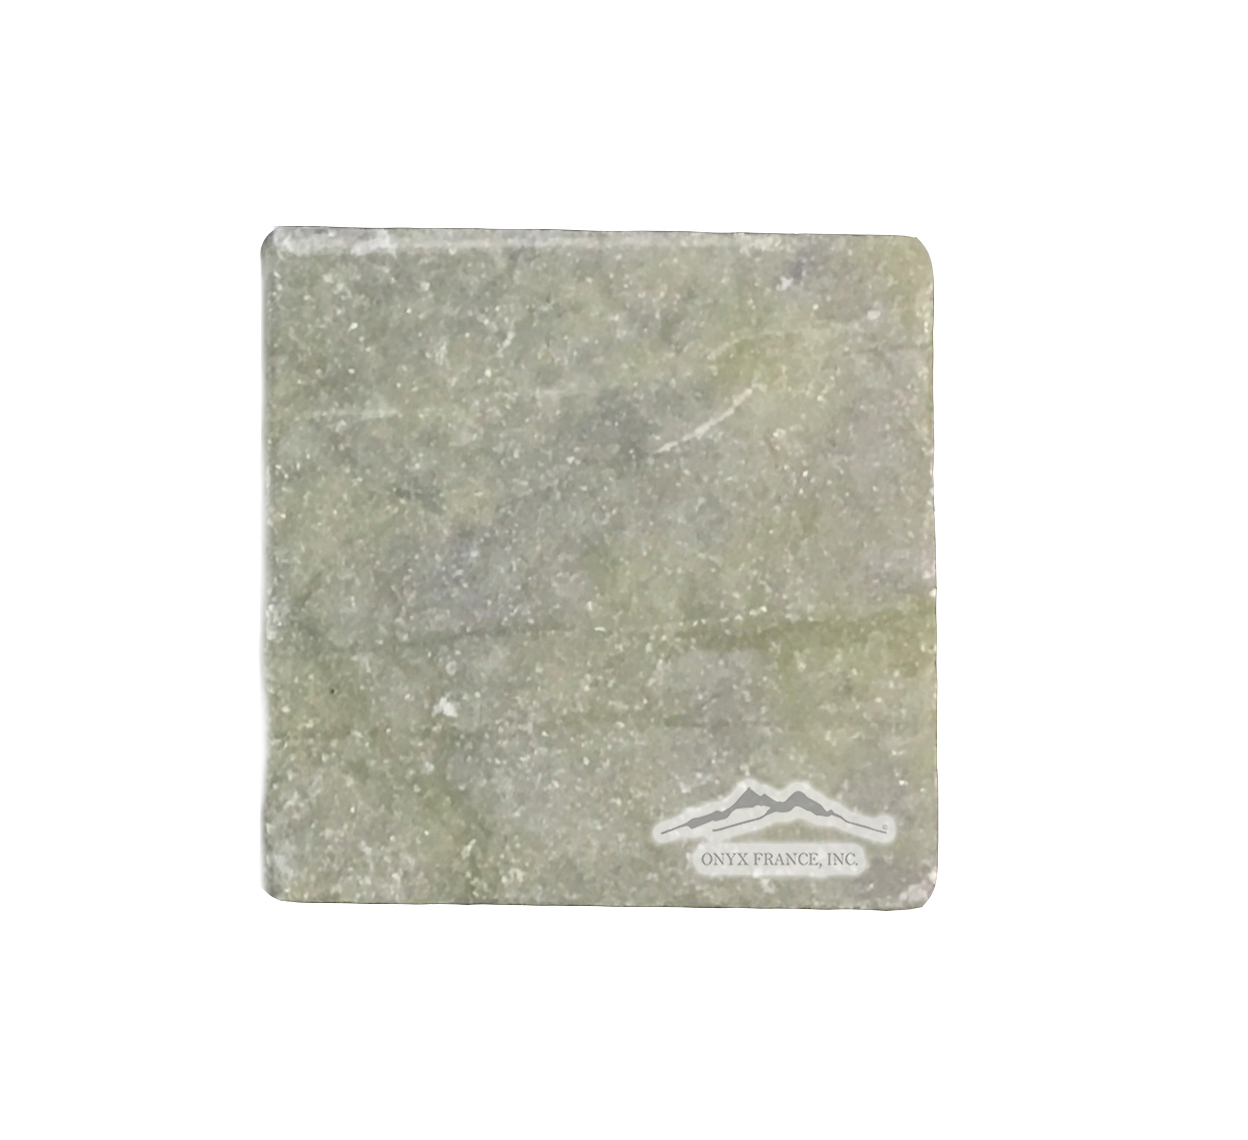 "Green Olivine Marble 4"" x 4"" Tile Tumbled"